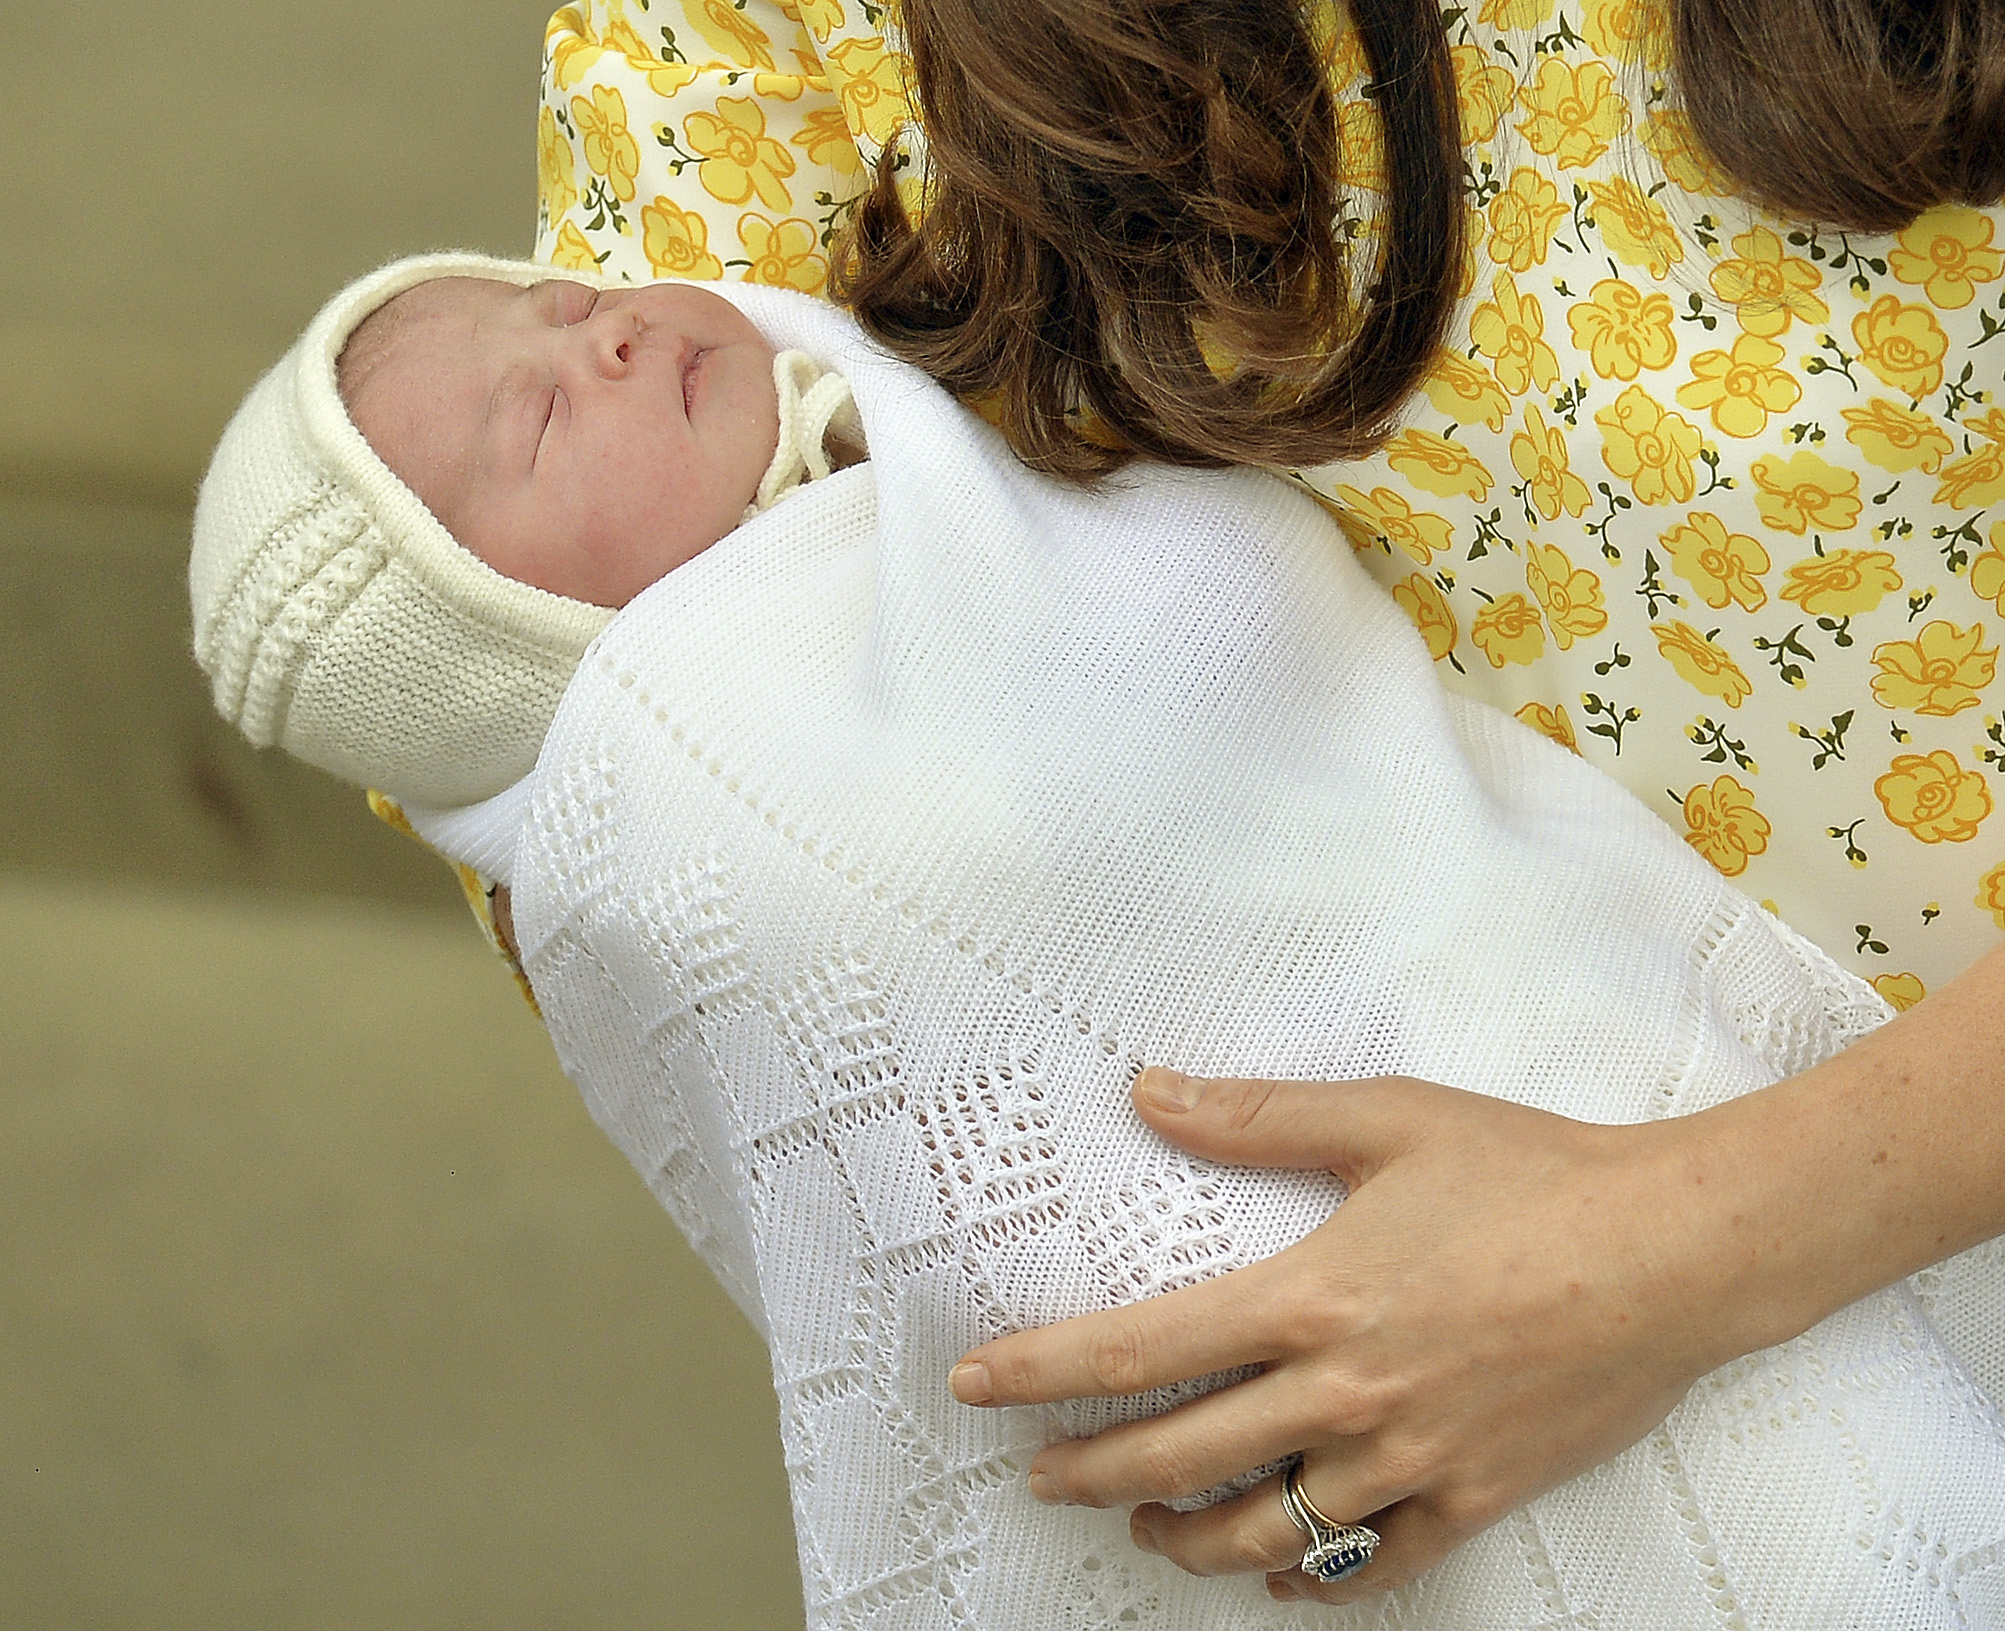 Britain's Catherine, Duchess of Cambridge, holds her baby daughter outside the Lindo Wing of St Mary's Hospital, in London, Britain May 2, 2015. The Duchess of Cambridge, the wife of Prince William, gave birth to a girl on Saturday, the couple's second child and a sister to one-year-old Prince George. REUTERS/John Stillwell/pool